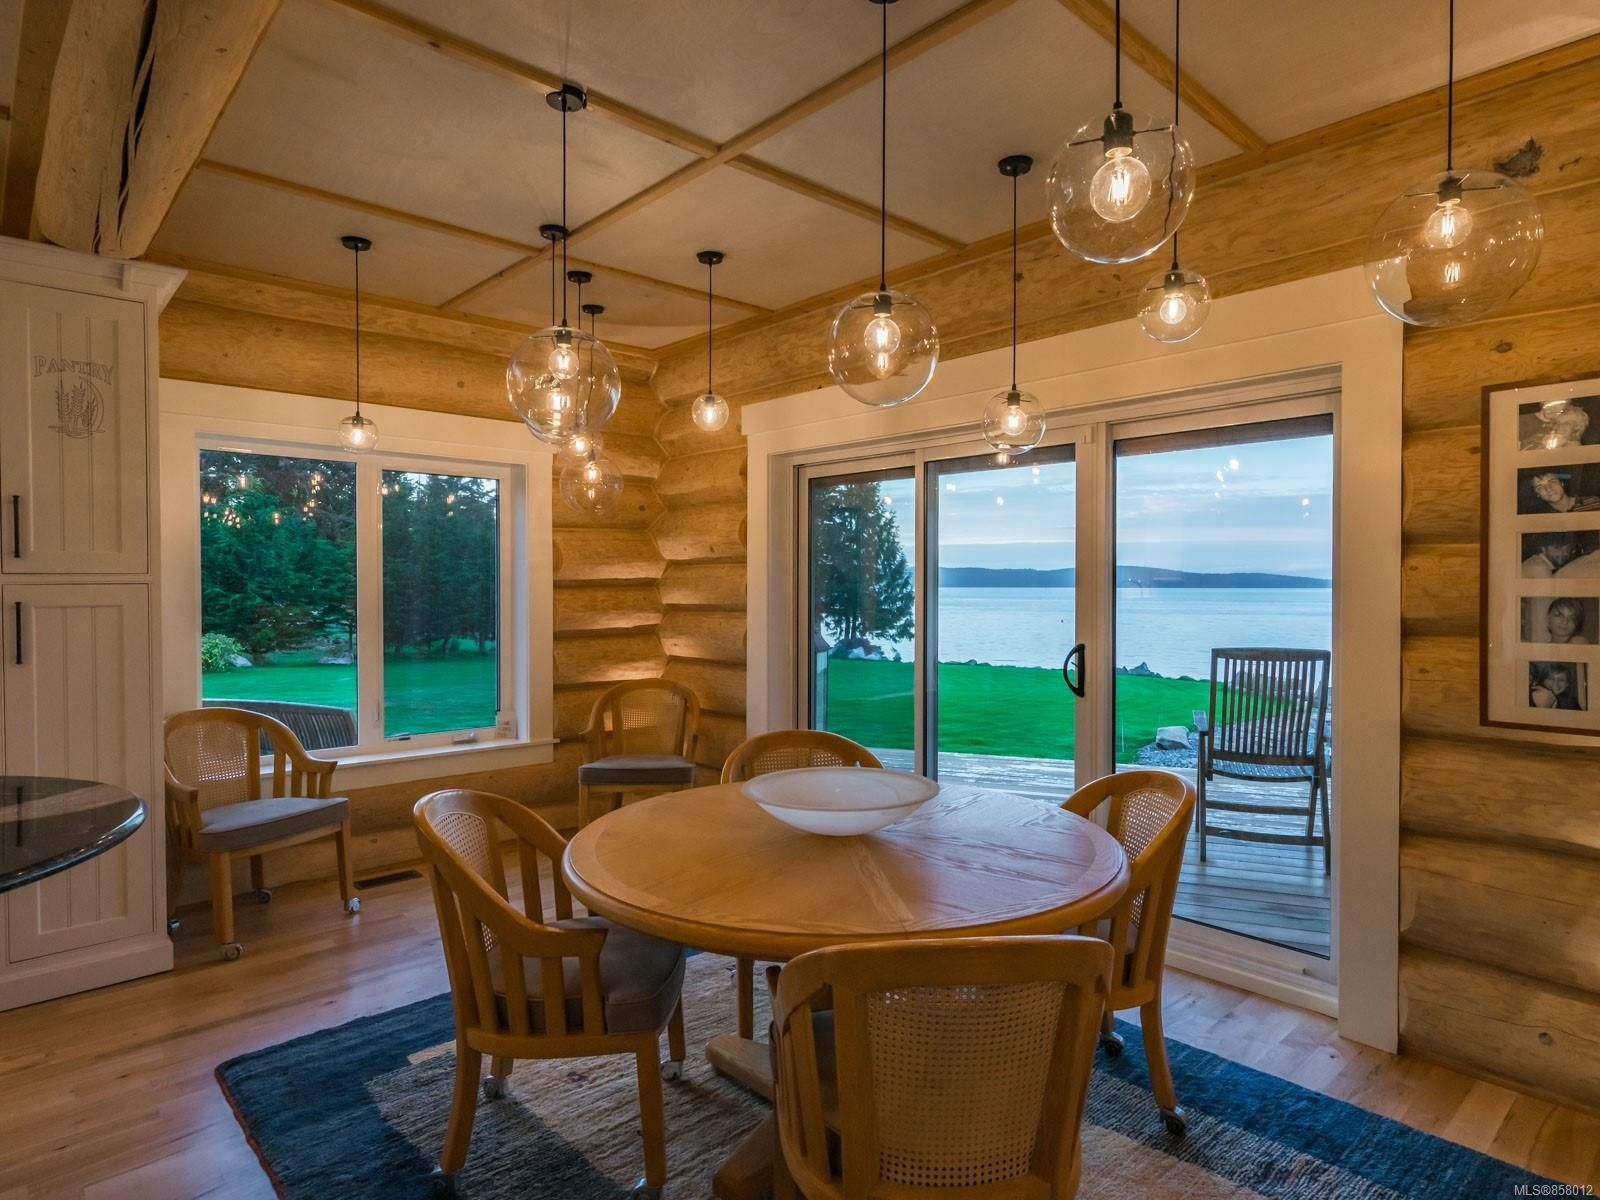 Photo 19: Photos: 6030 MINE Rd in : NI Port McNeill House for sale (North Island)  : MLS®# 858012